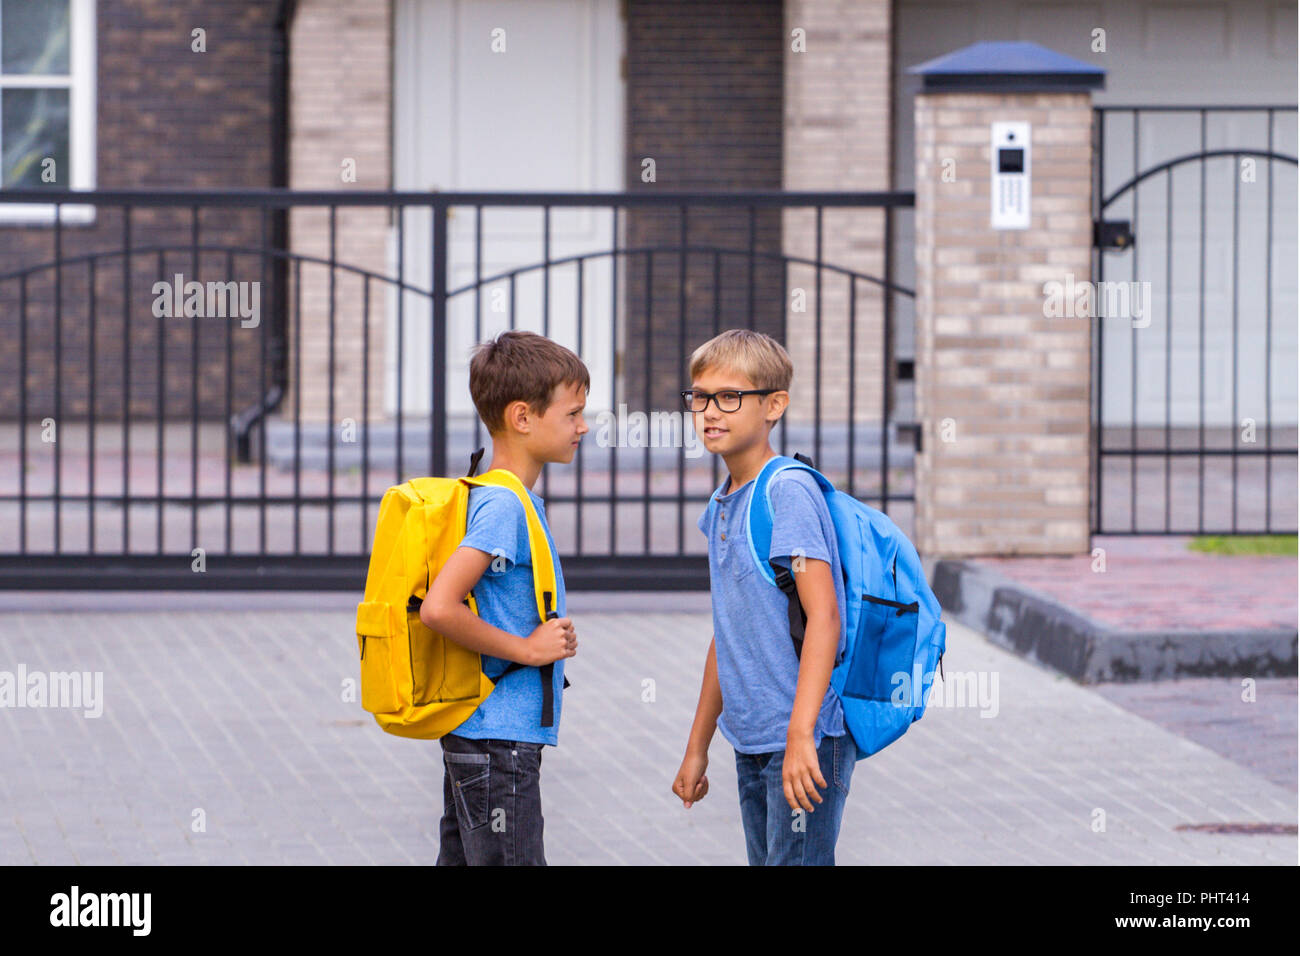 Education, school, friendship concept - two boys with backpacks talking after school outdoors Stock Photo